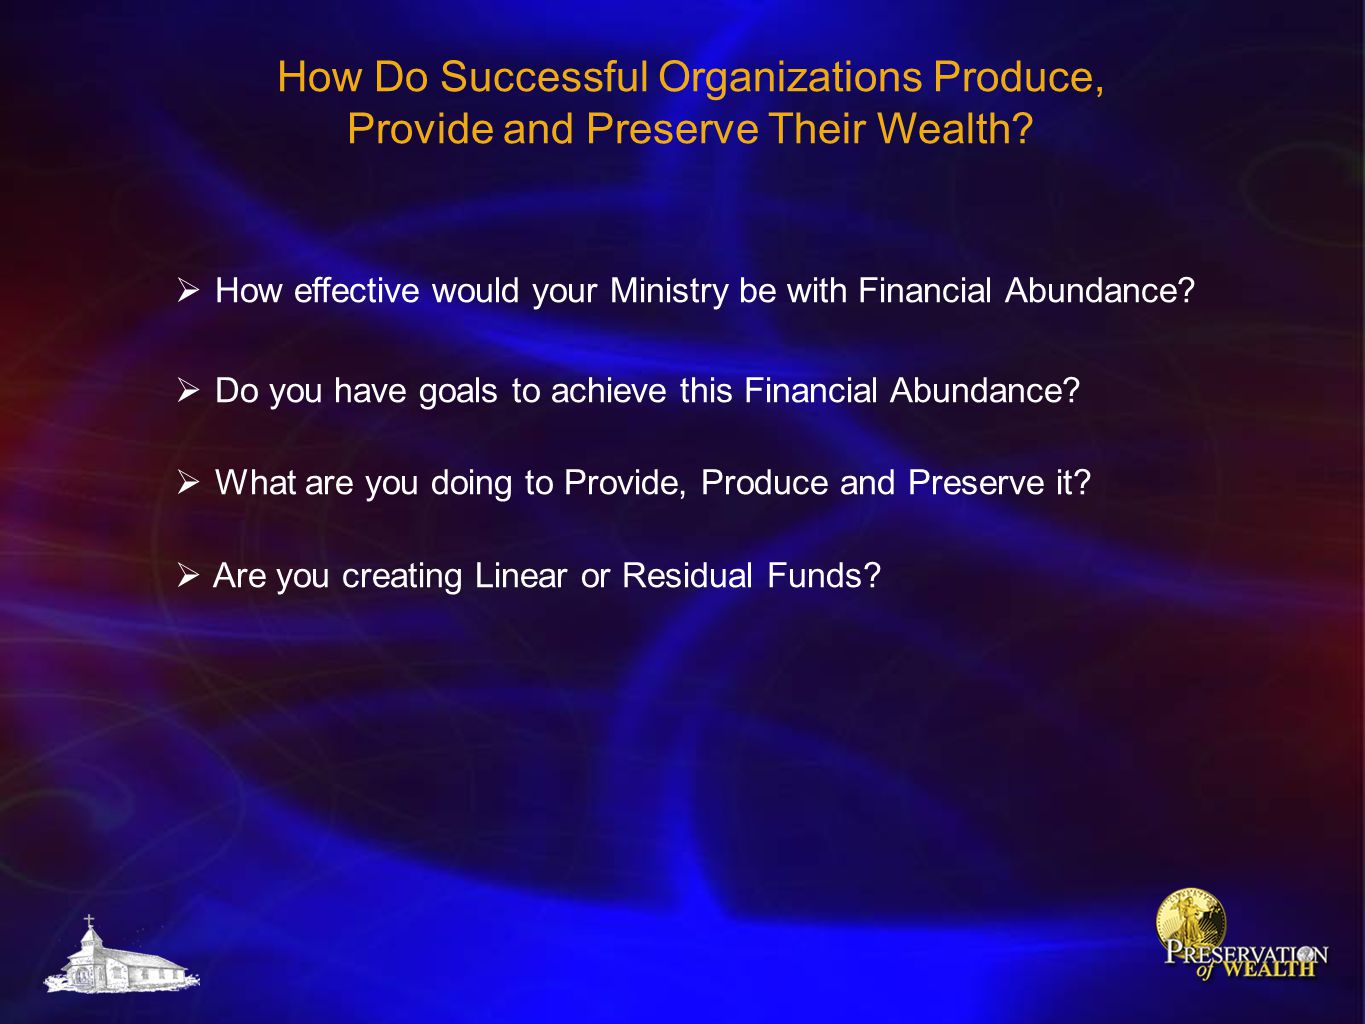 How Do Successful Organizations Produce, Provide and Preserve Their Wealth